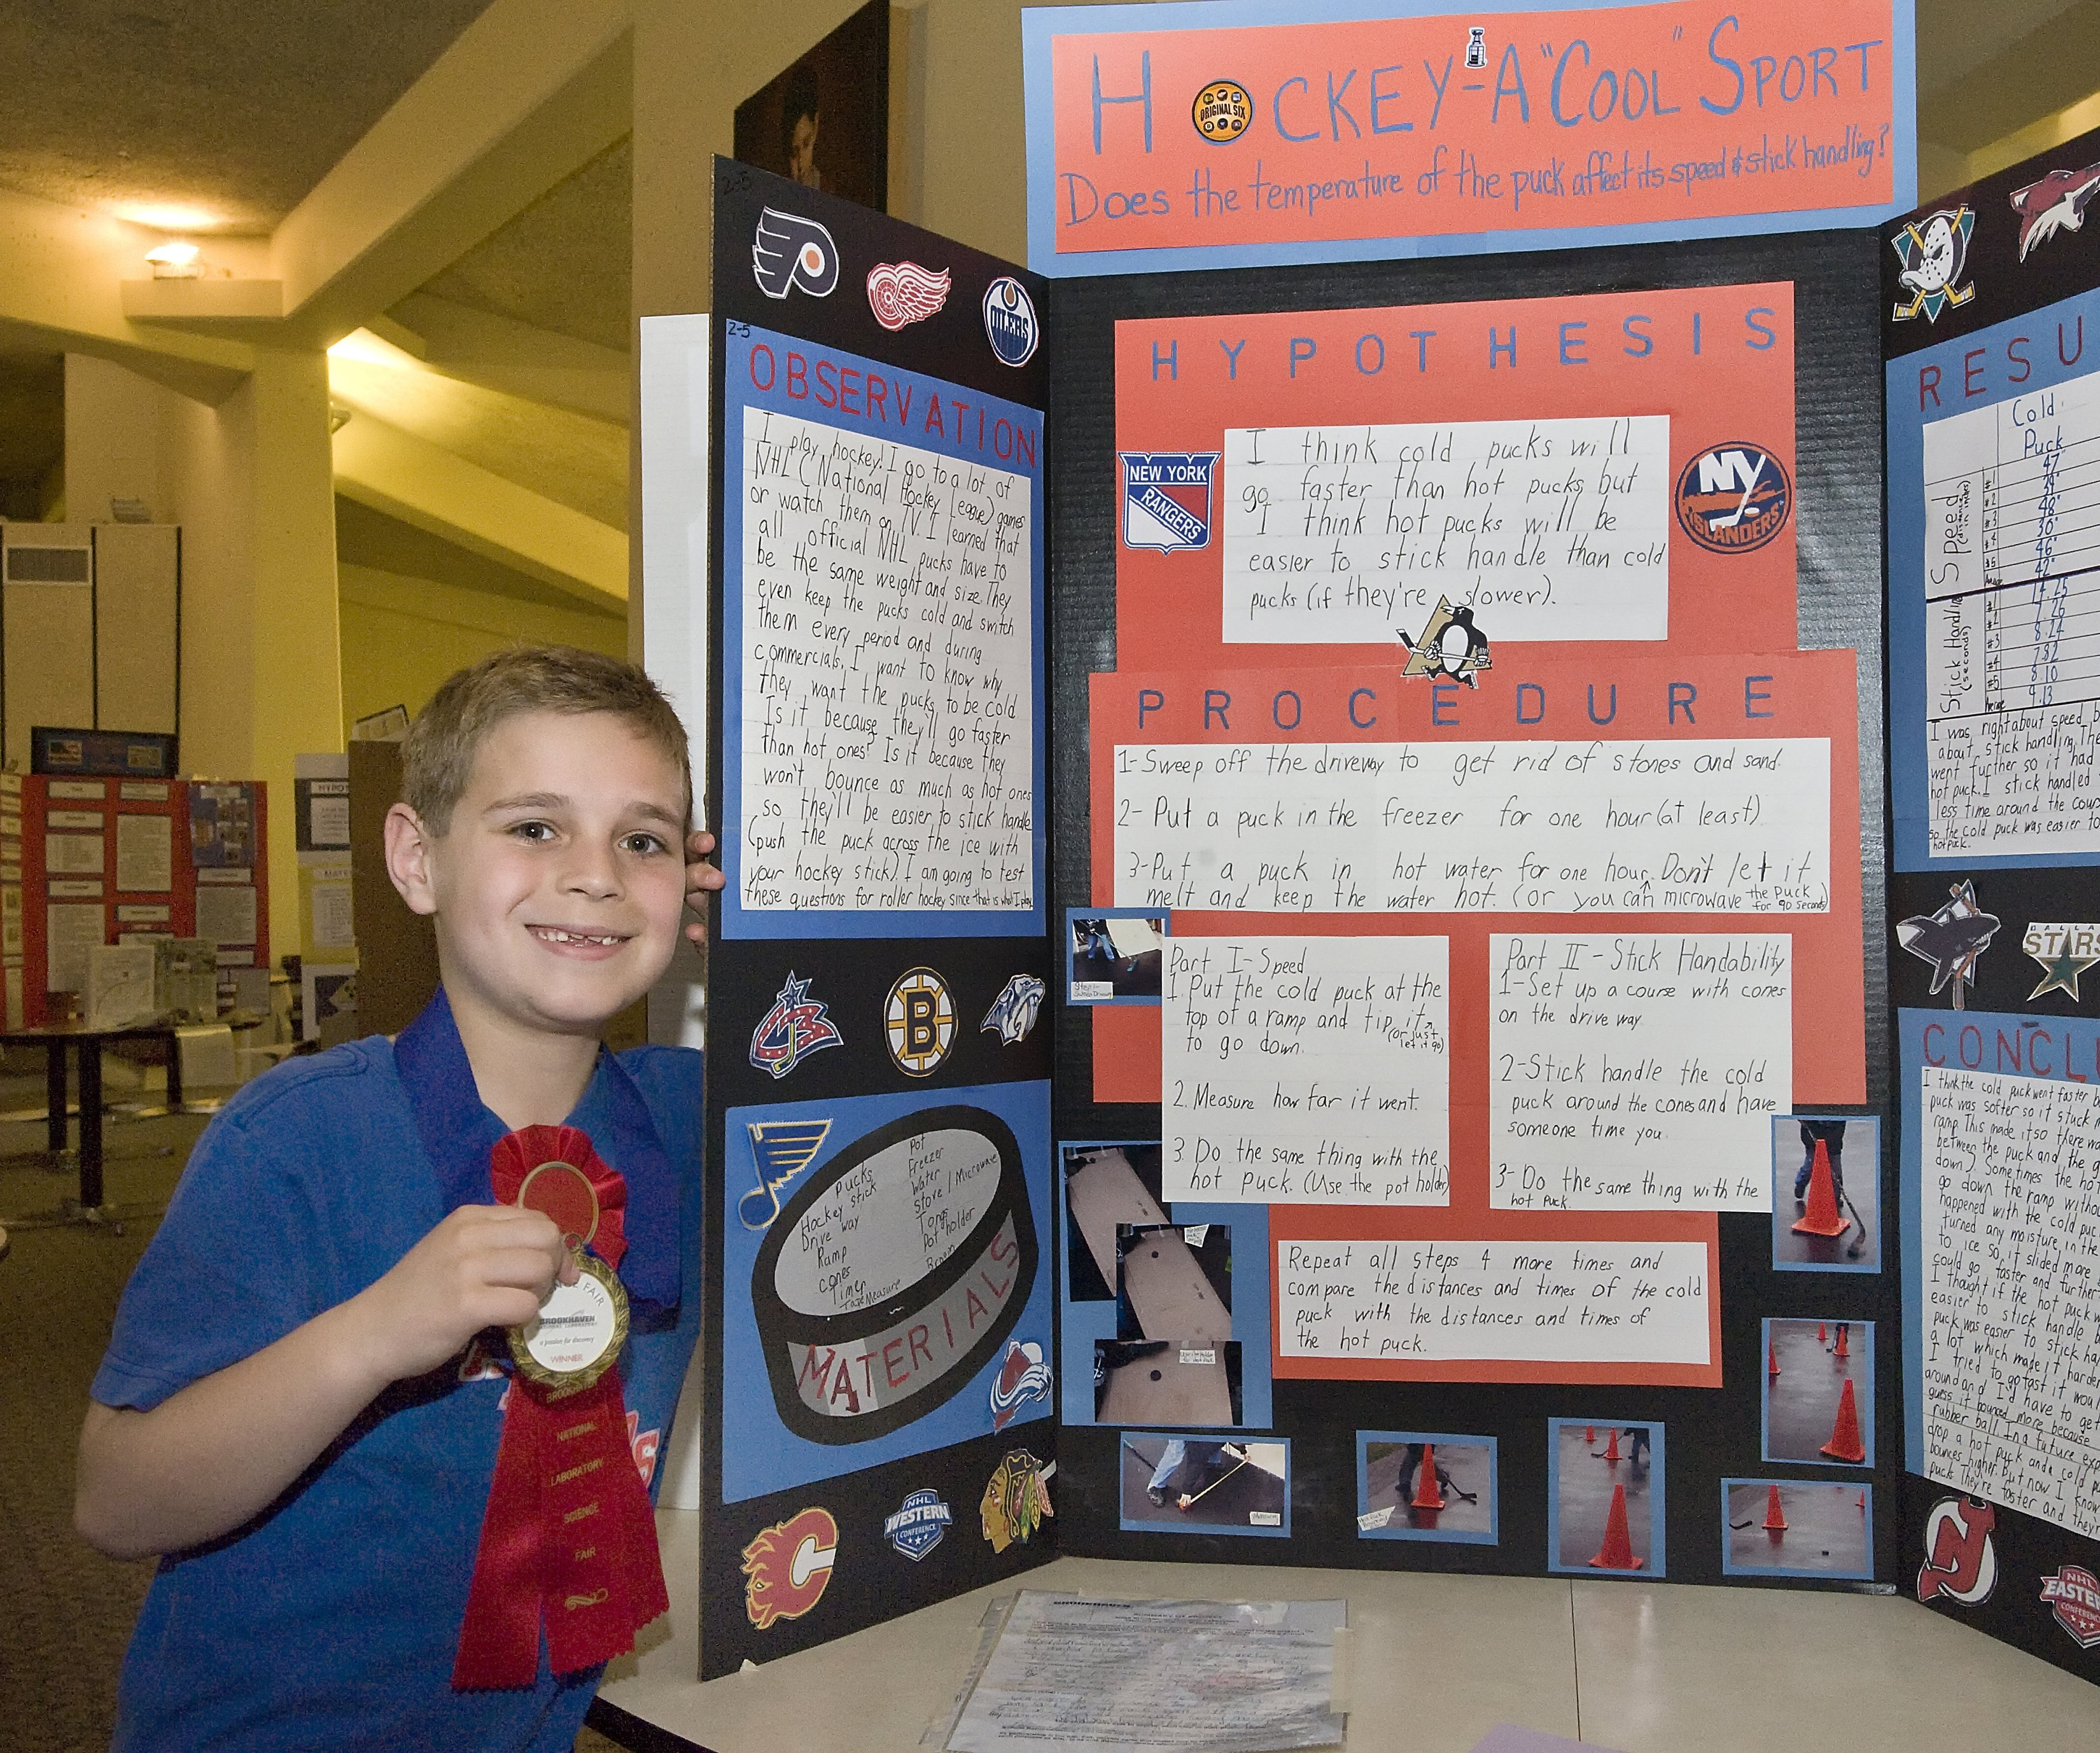 10 Awesome Sports Science Fair Project Ideas from ant control to wind energy winning projects at brookhaven 41